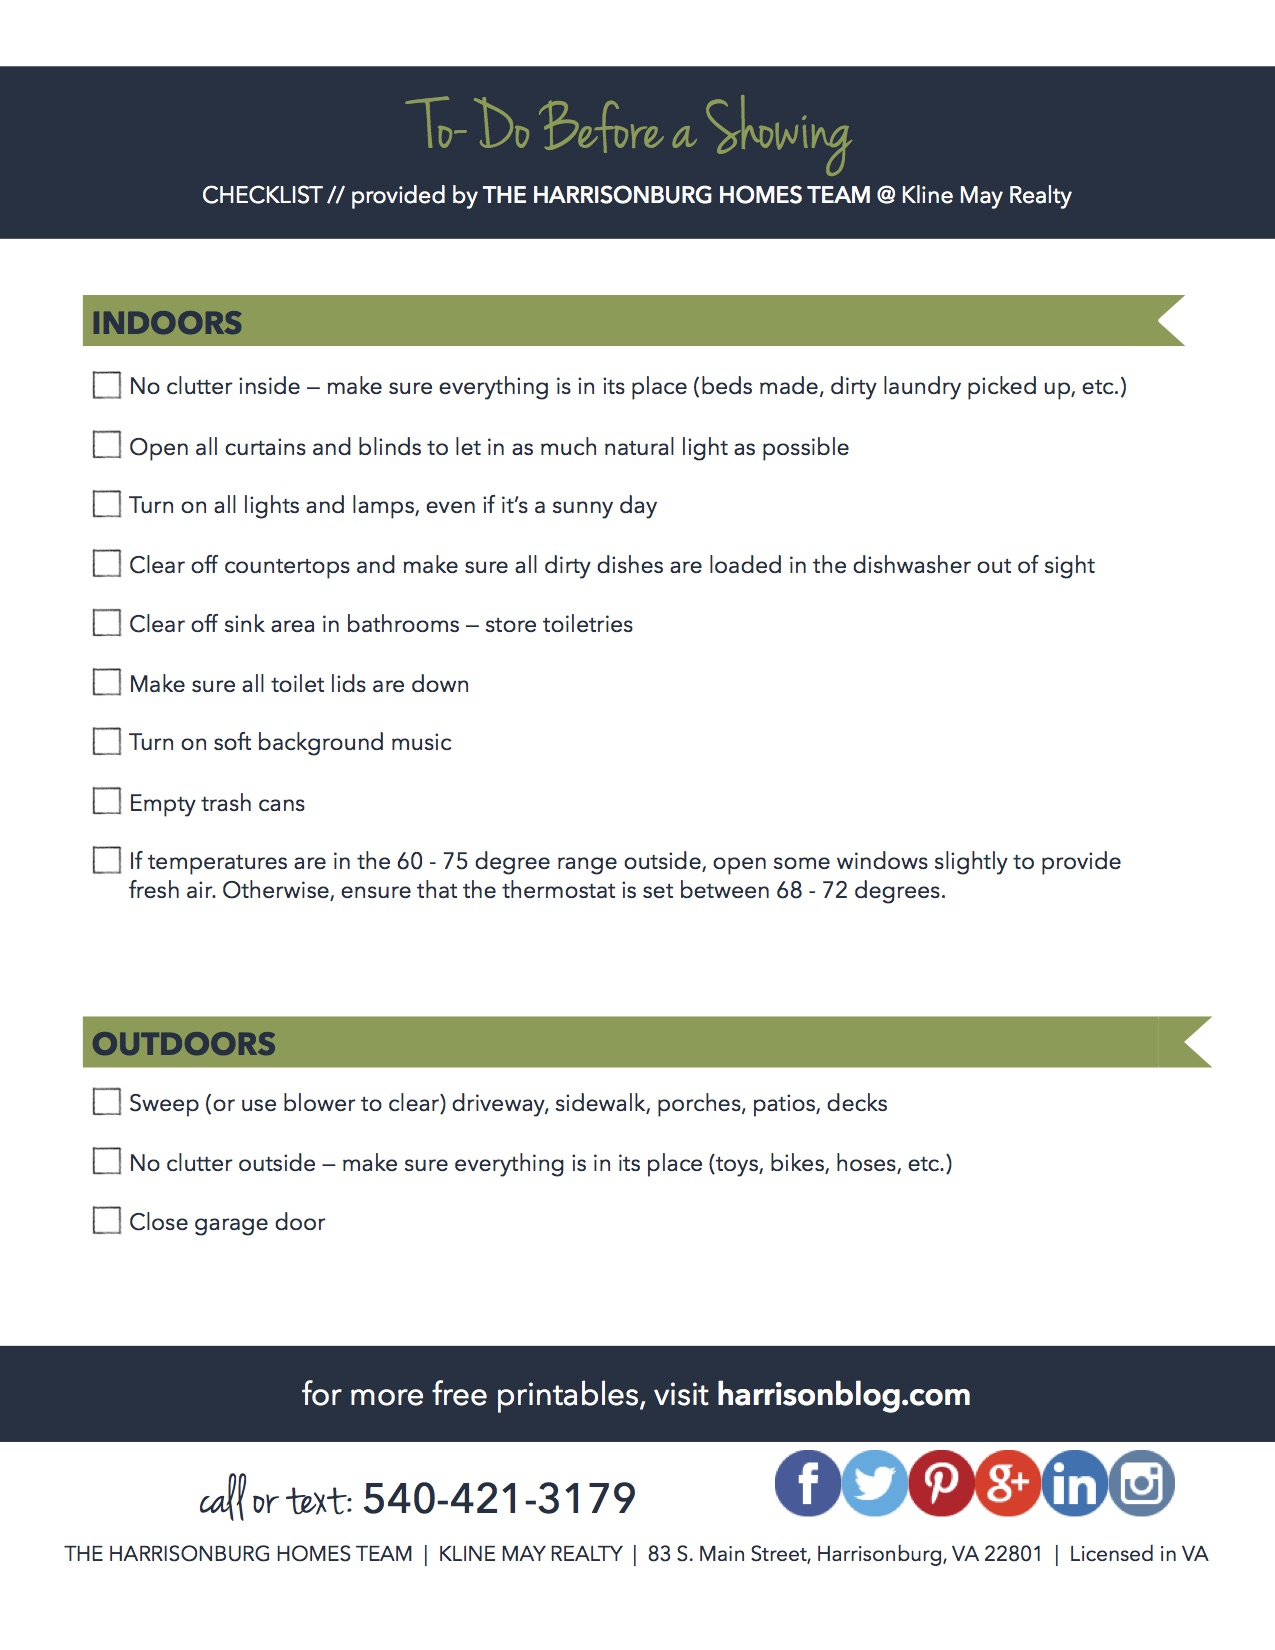 Home for Sale: Printable Pre-Showing Checklist | The Harrisonburg Homes Team